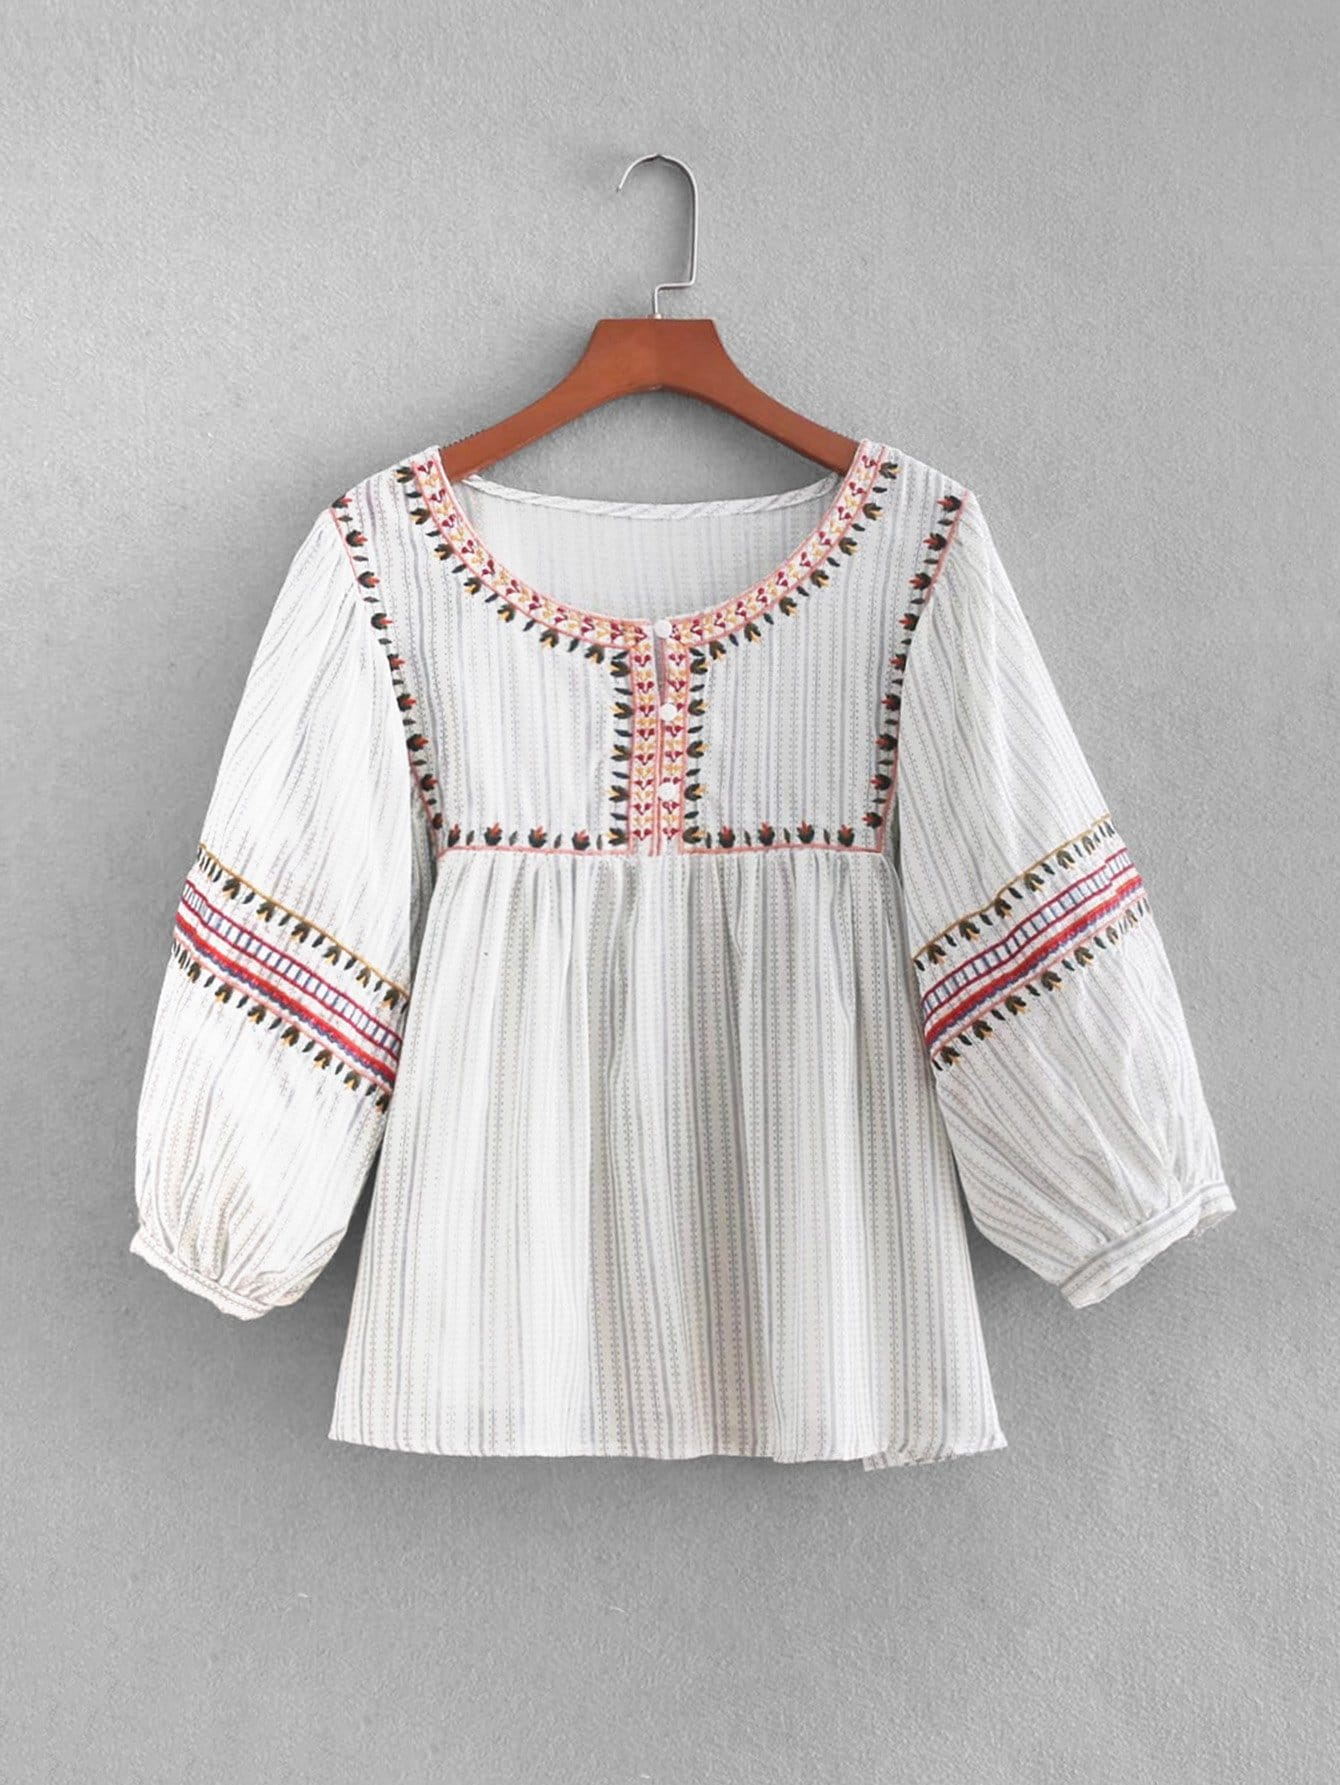 Embroidered Babydoll Blouse embroidered cap sleeve babydoll